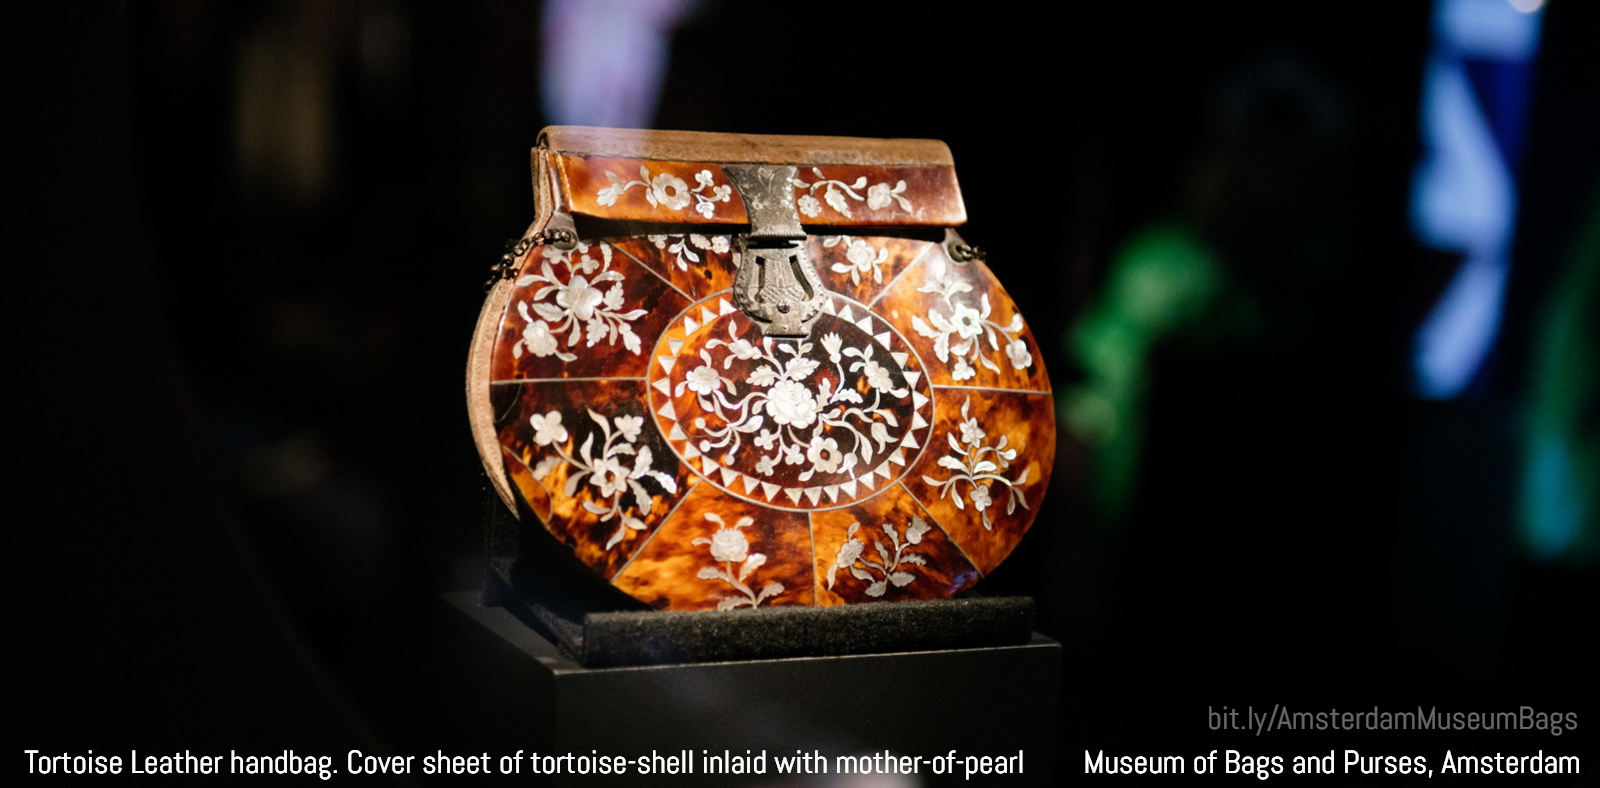 Tortoise Leather handbag with cover sheet of tortoise-shell inlaid with mother-of-pearl